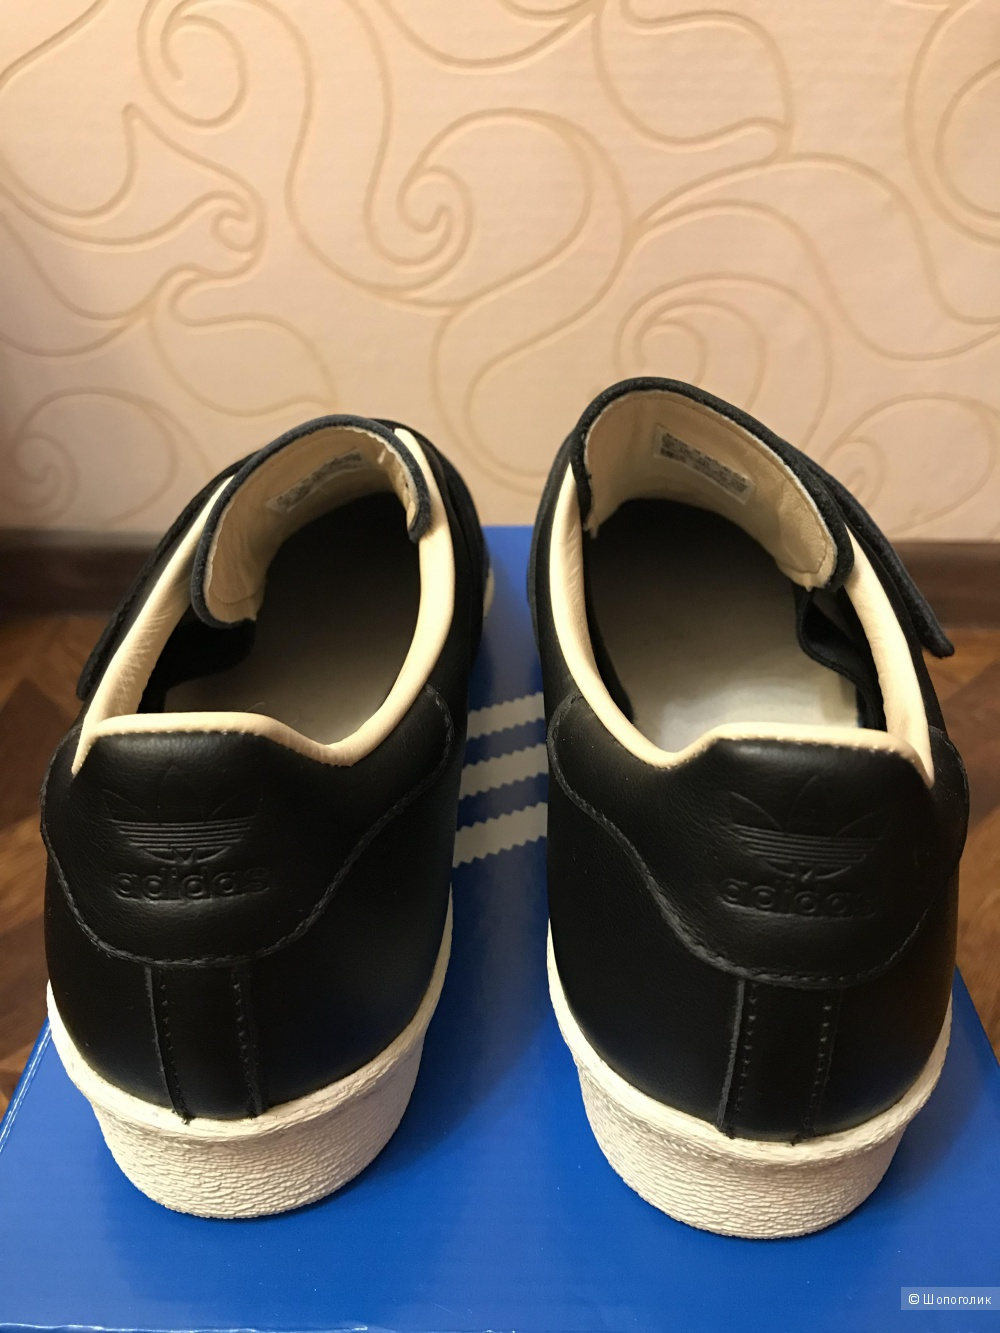 Кеды Adidas Superstar 80s, р. 38